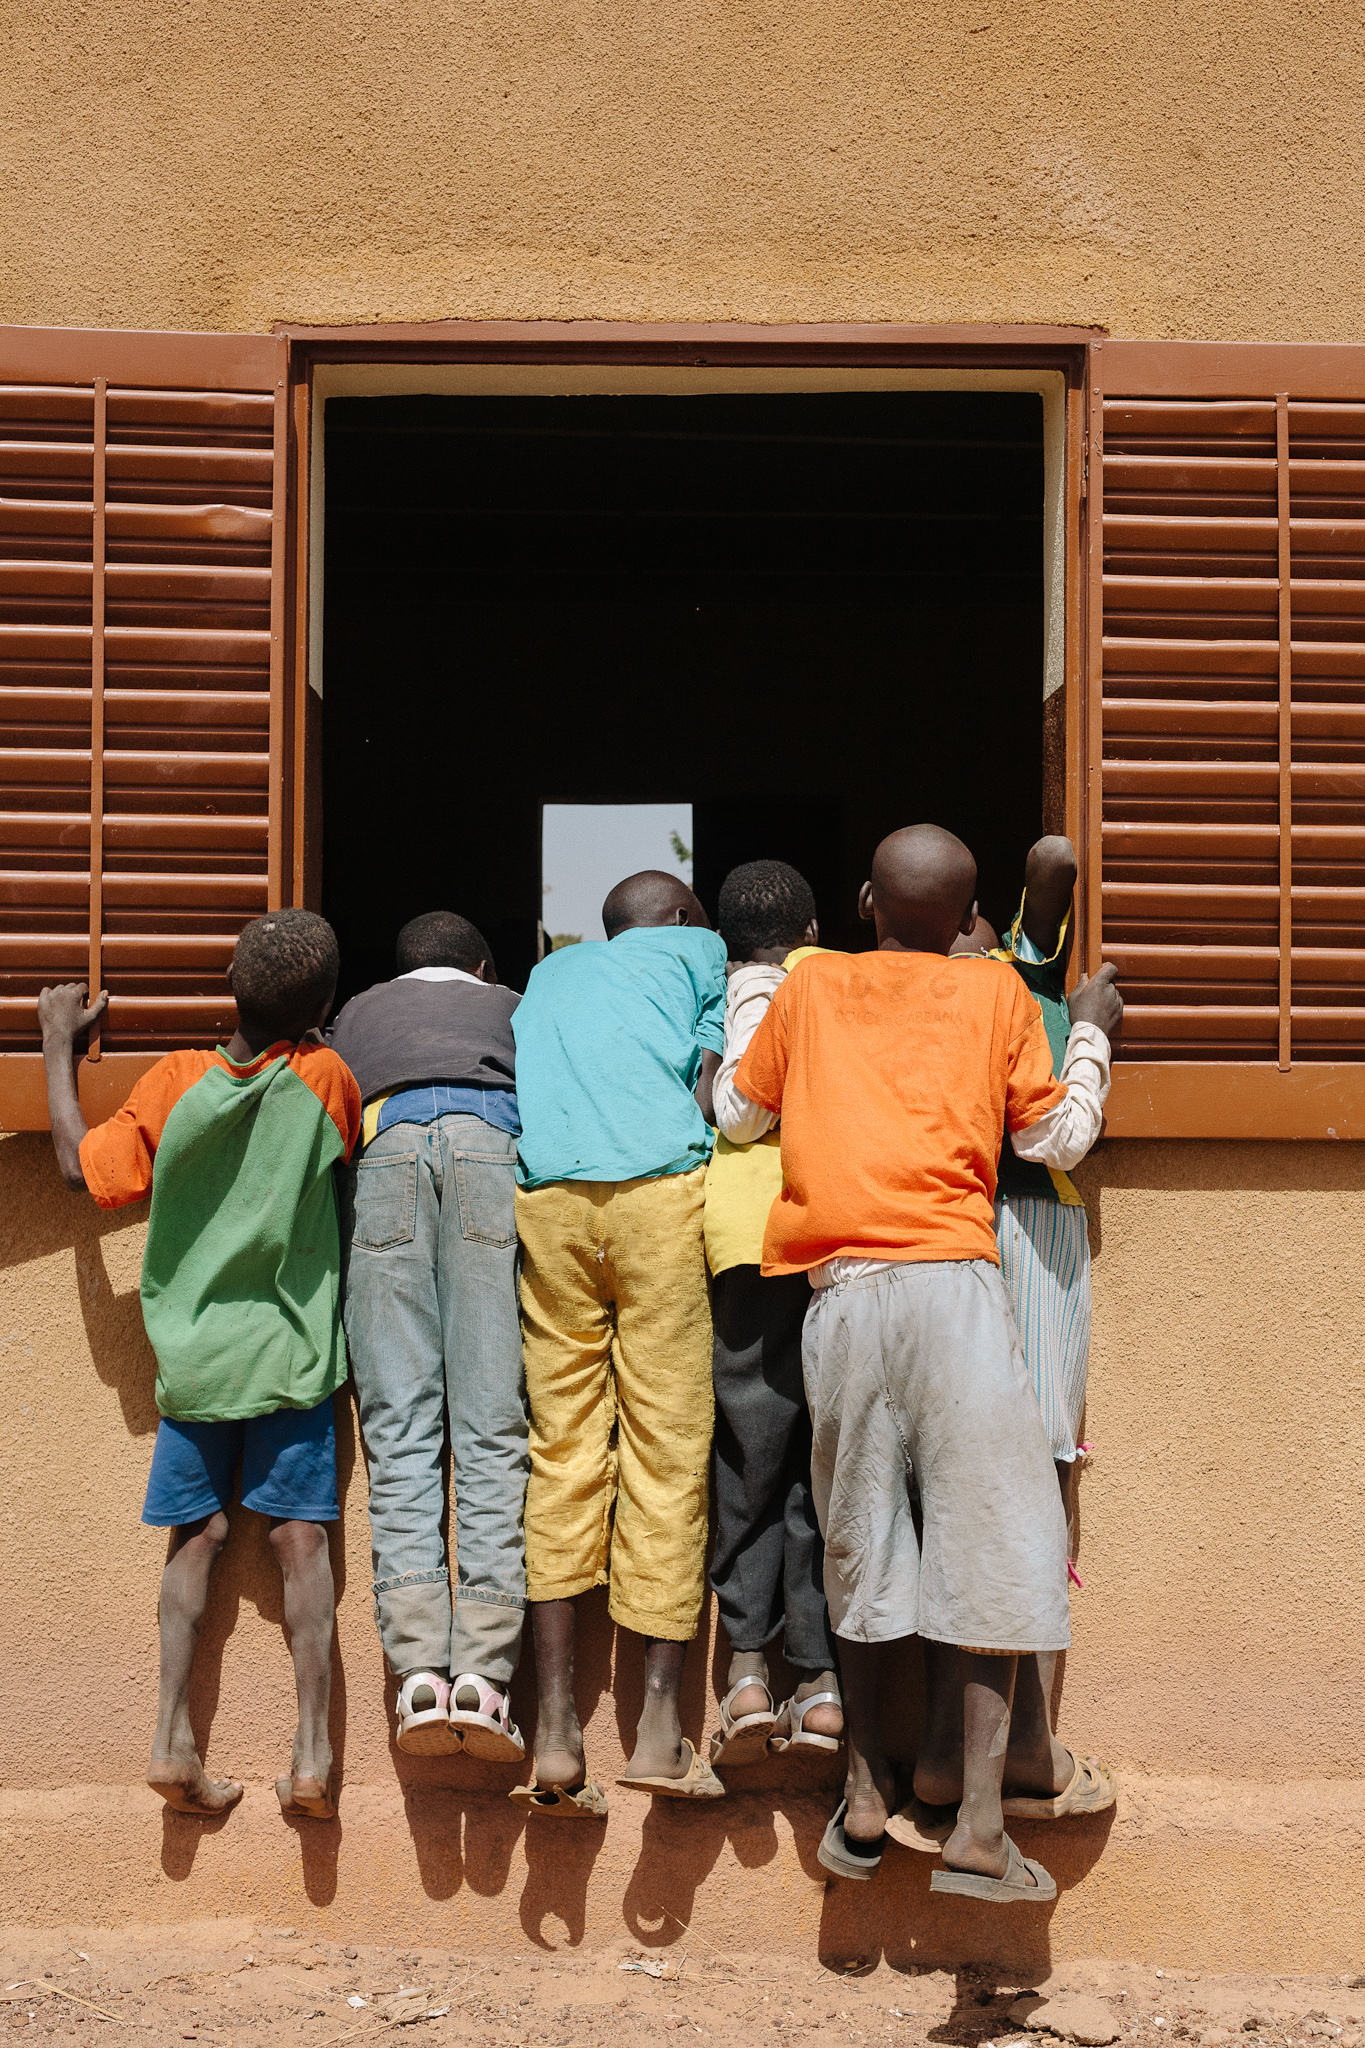 In the village of Gnenkekoro, children hang from a school windowsill in order to observe the dental clinic taking place inside.